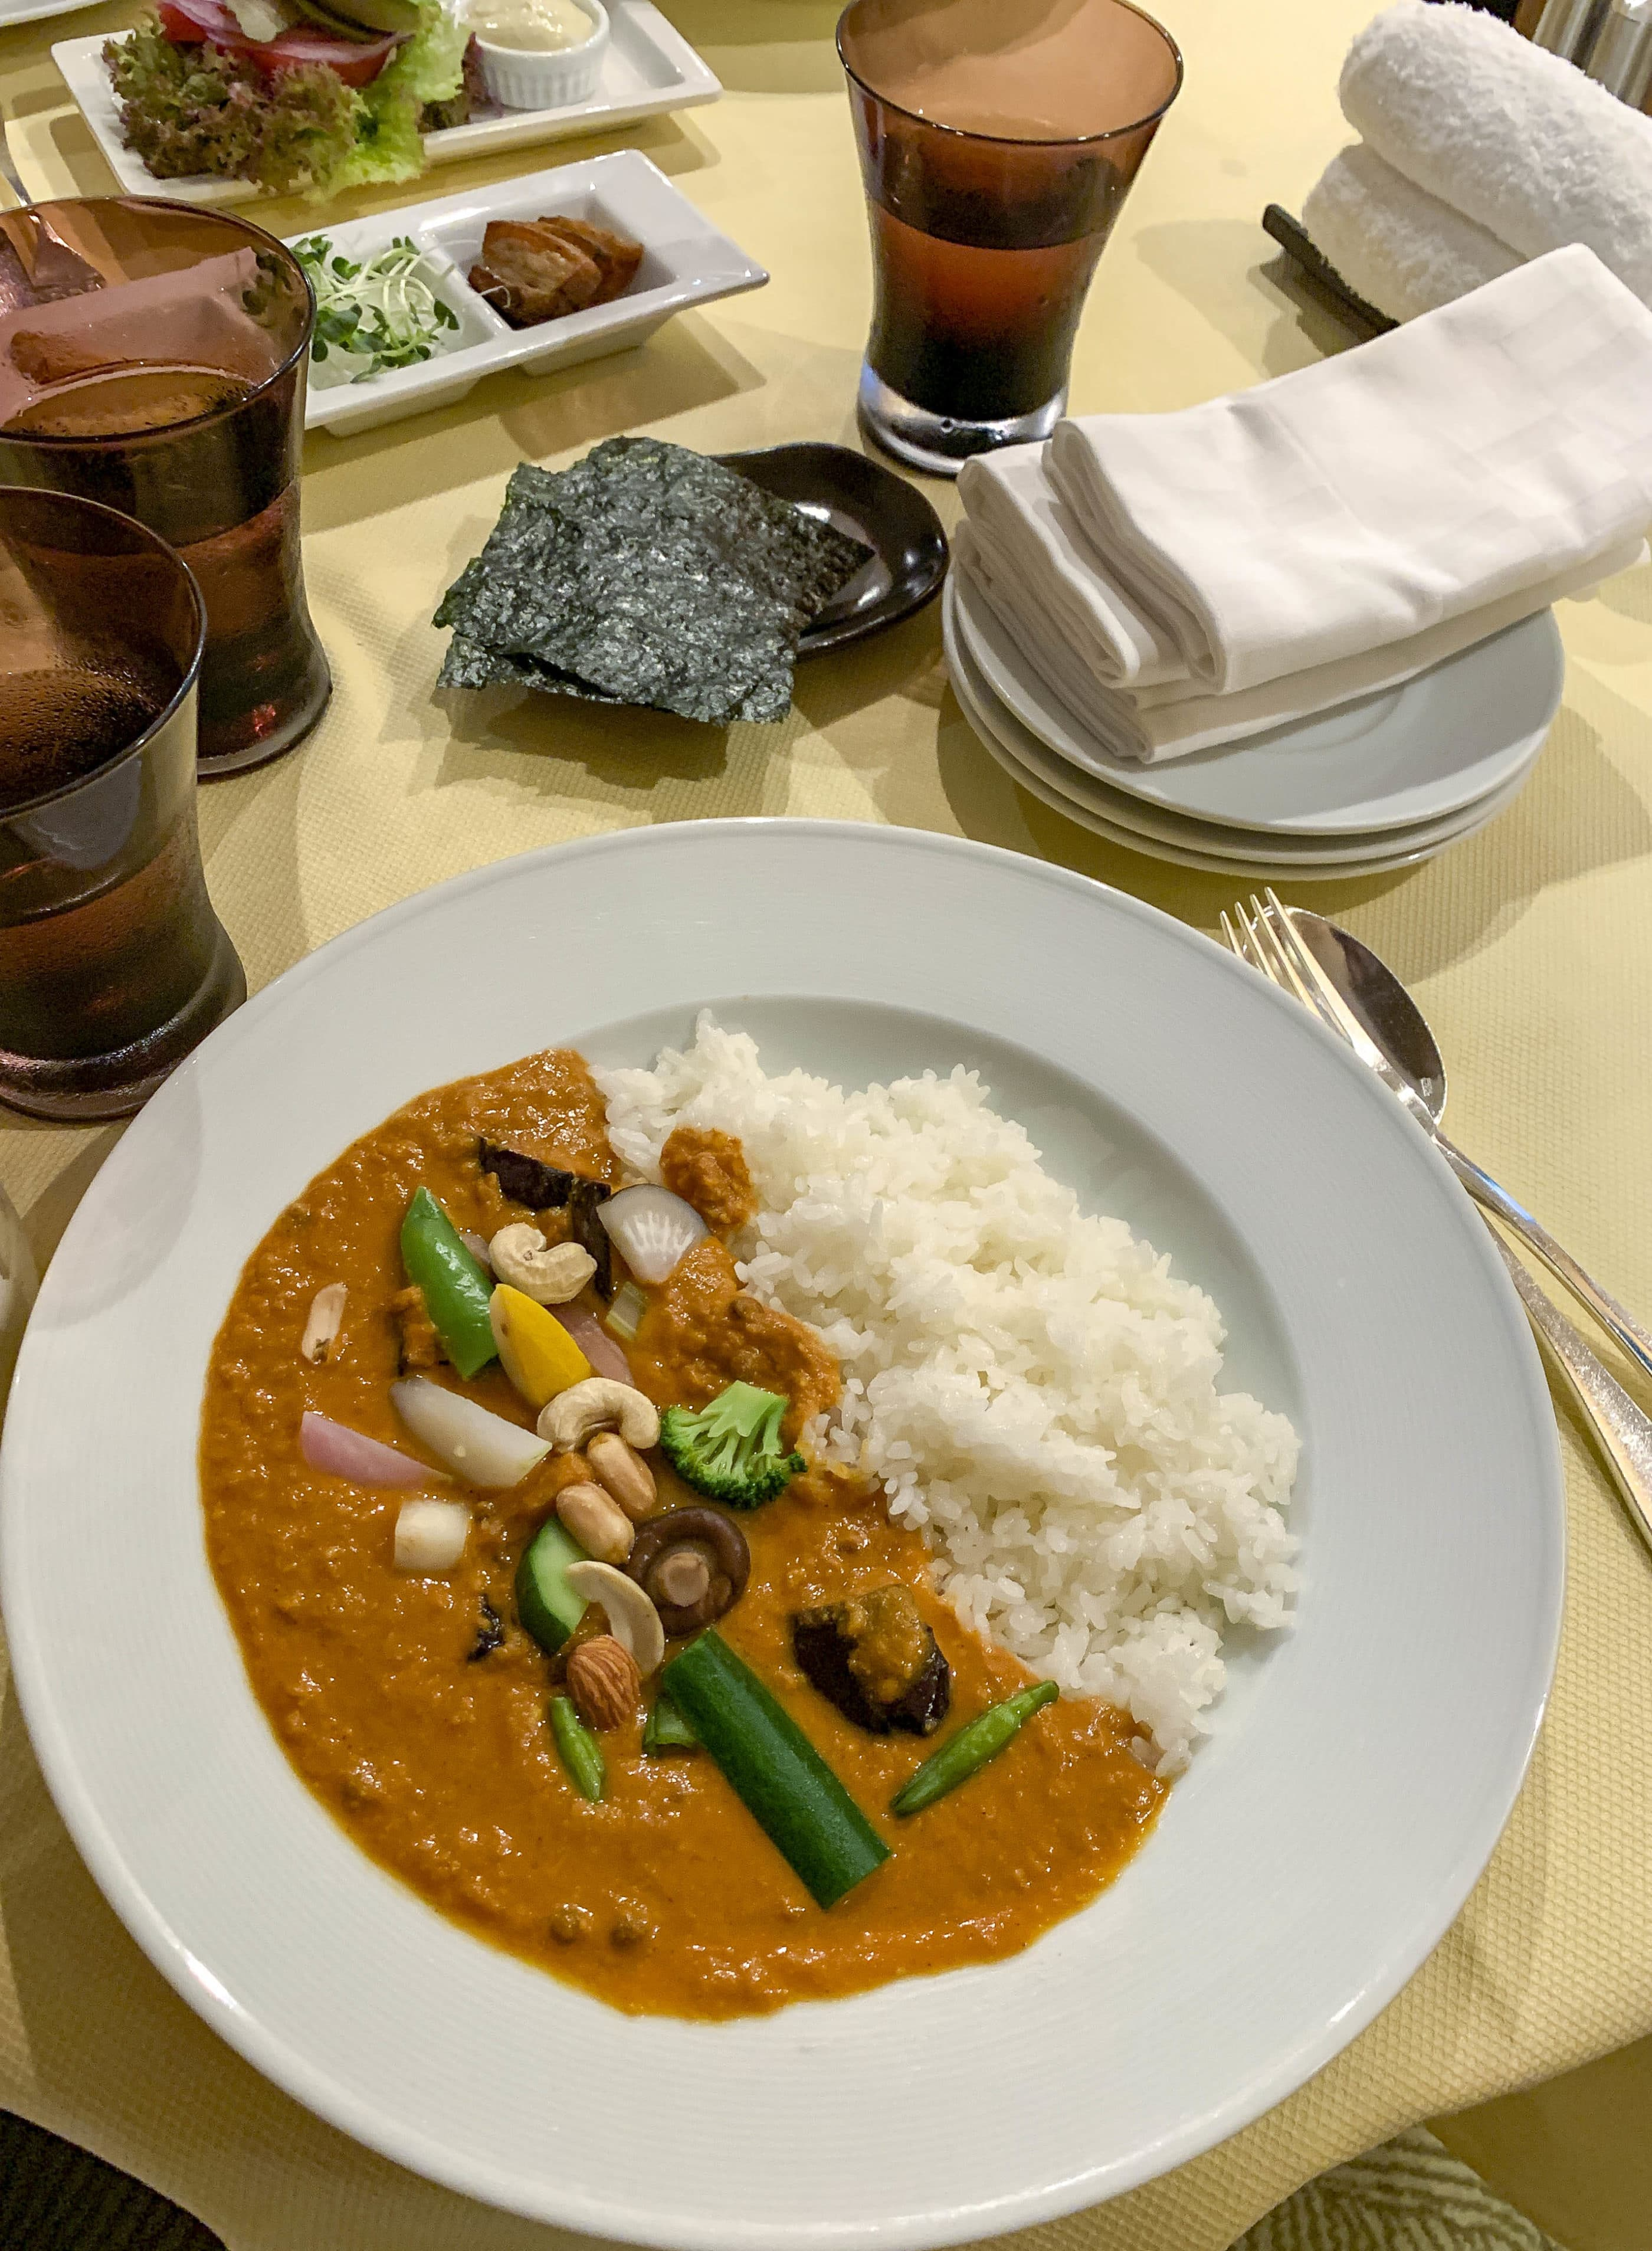 A plate of Japanese curry and rice with perfectly-placed steamed vegetables on top of a room service cart.